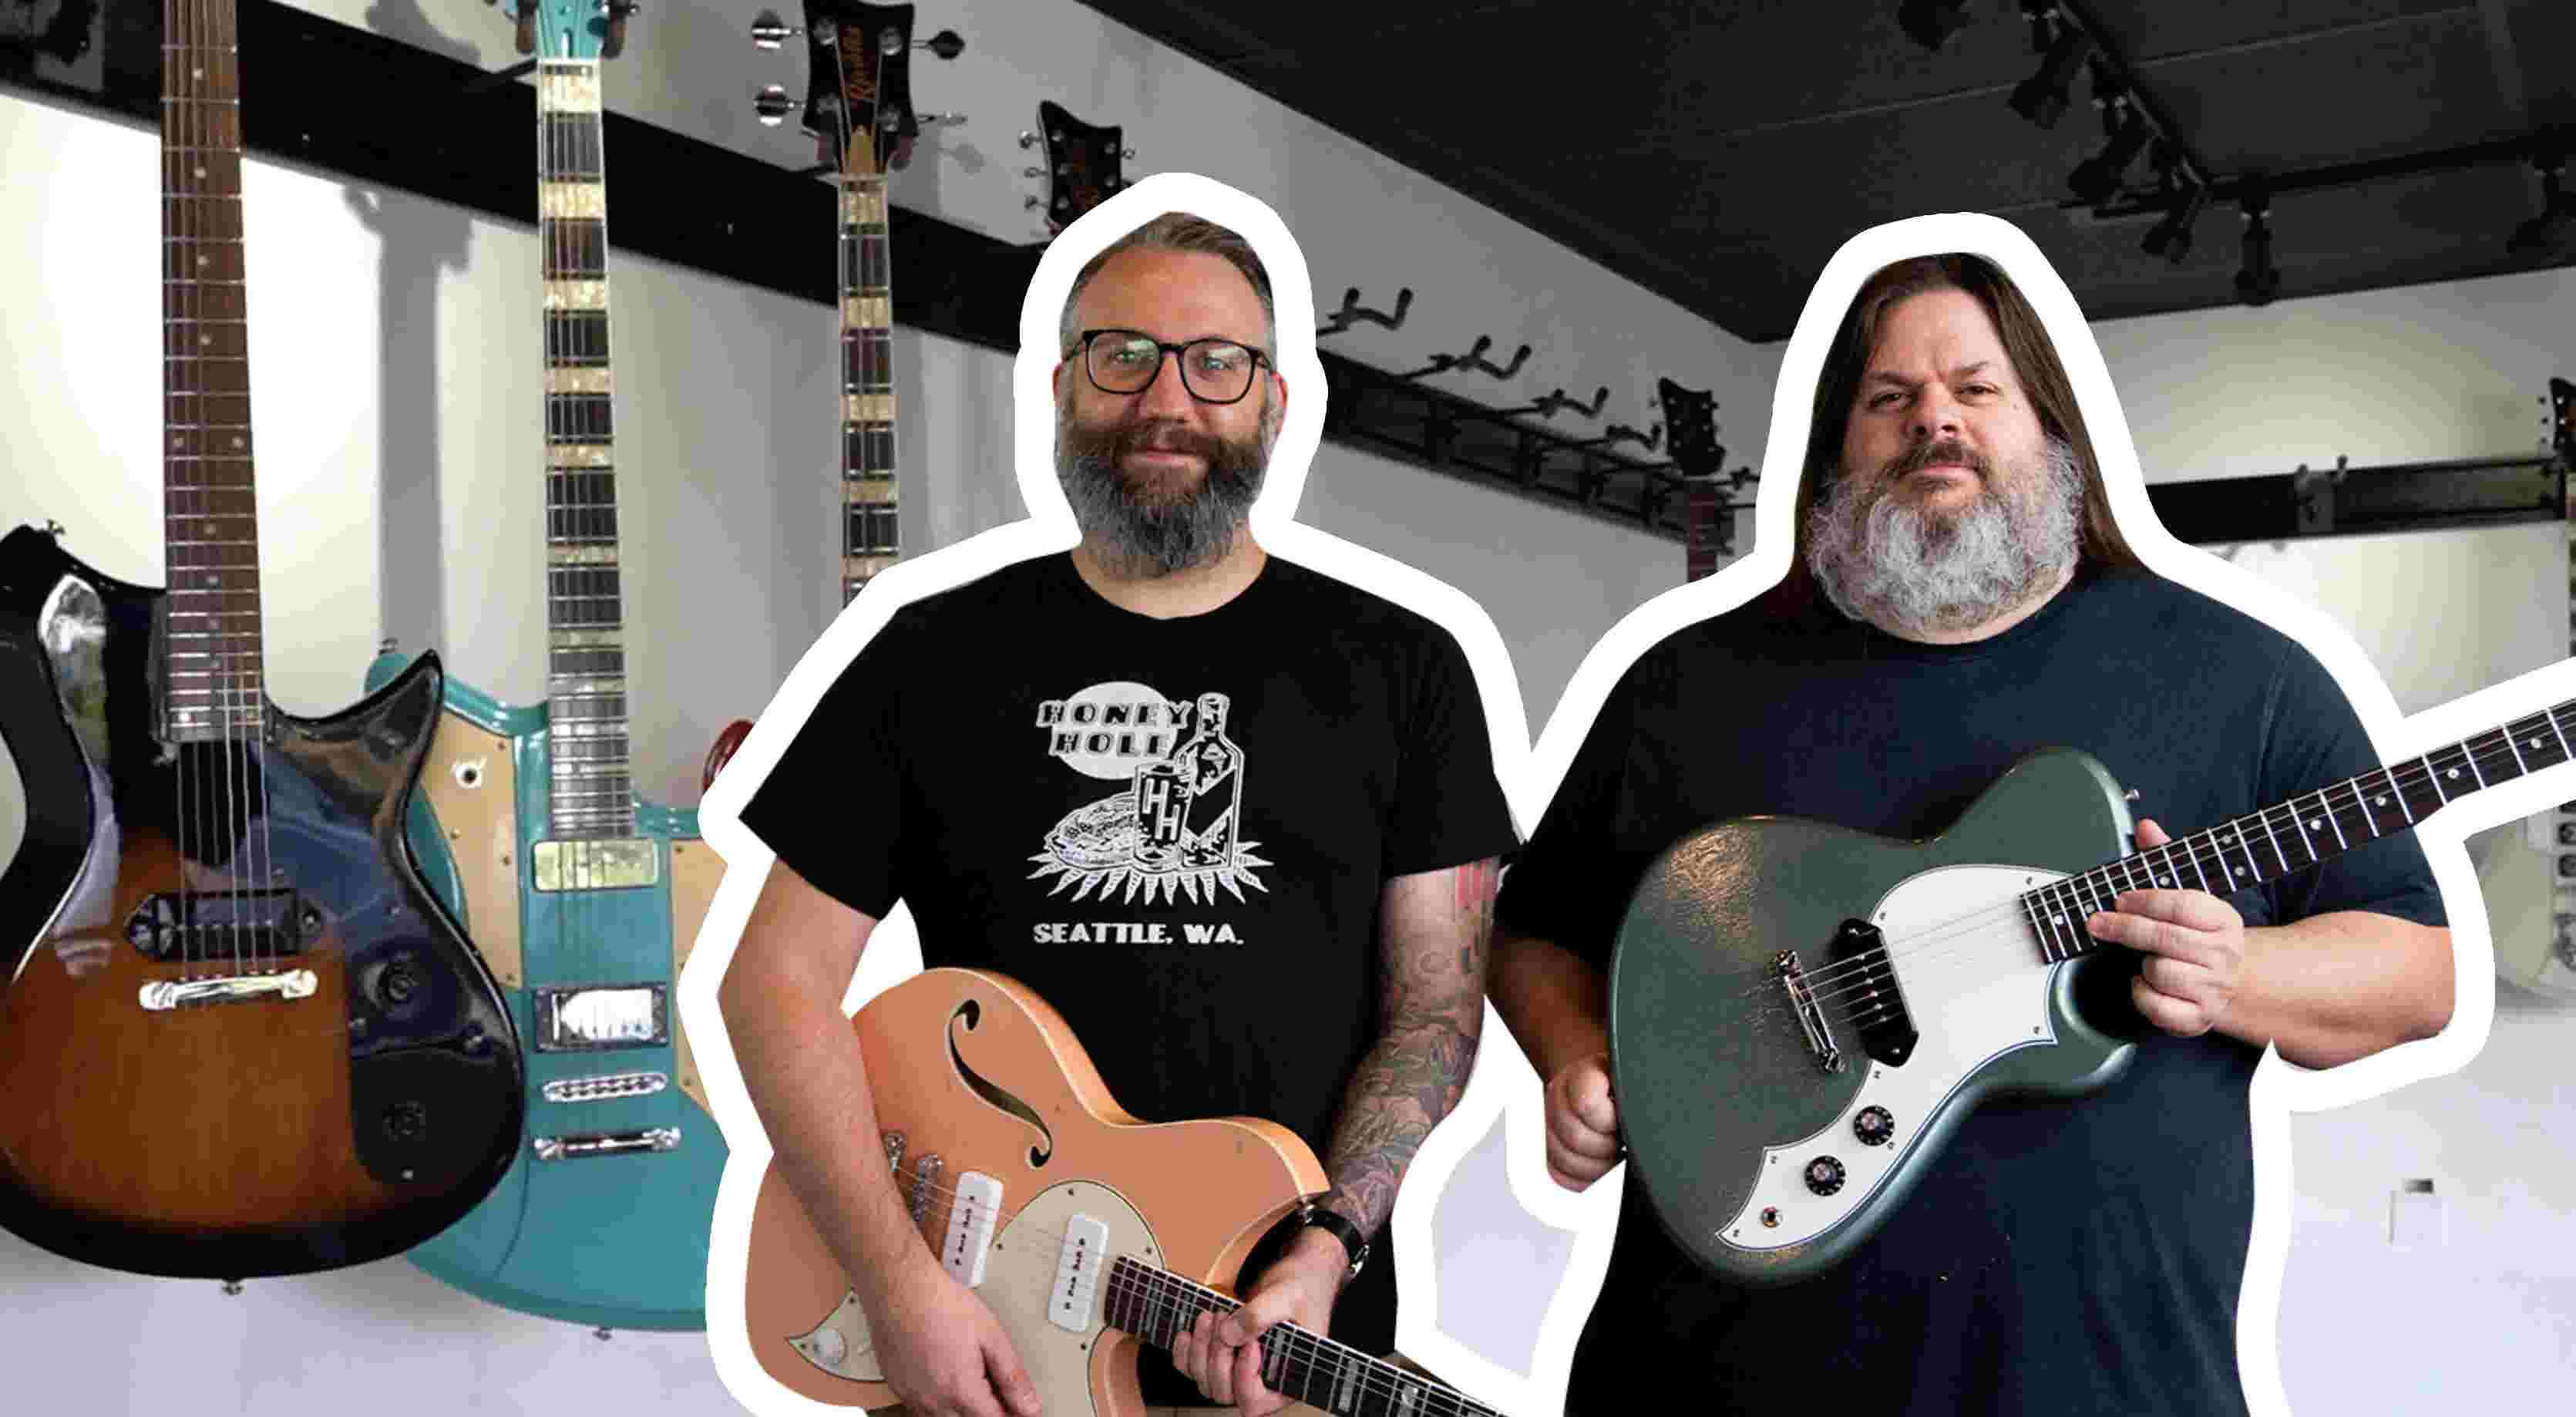 How this small guitar company has survived COVID-19 without any layoffs